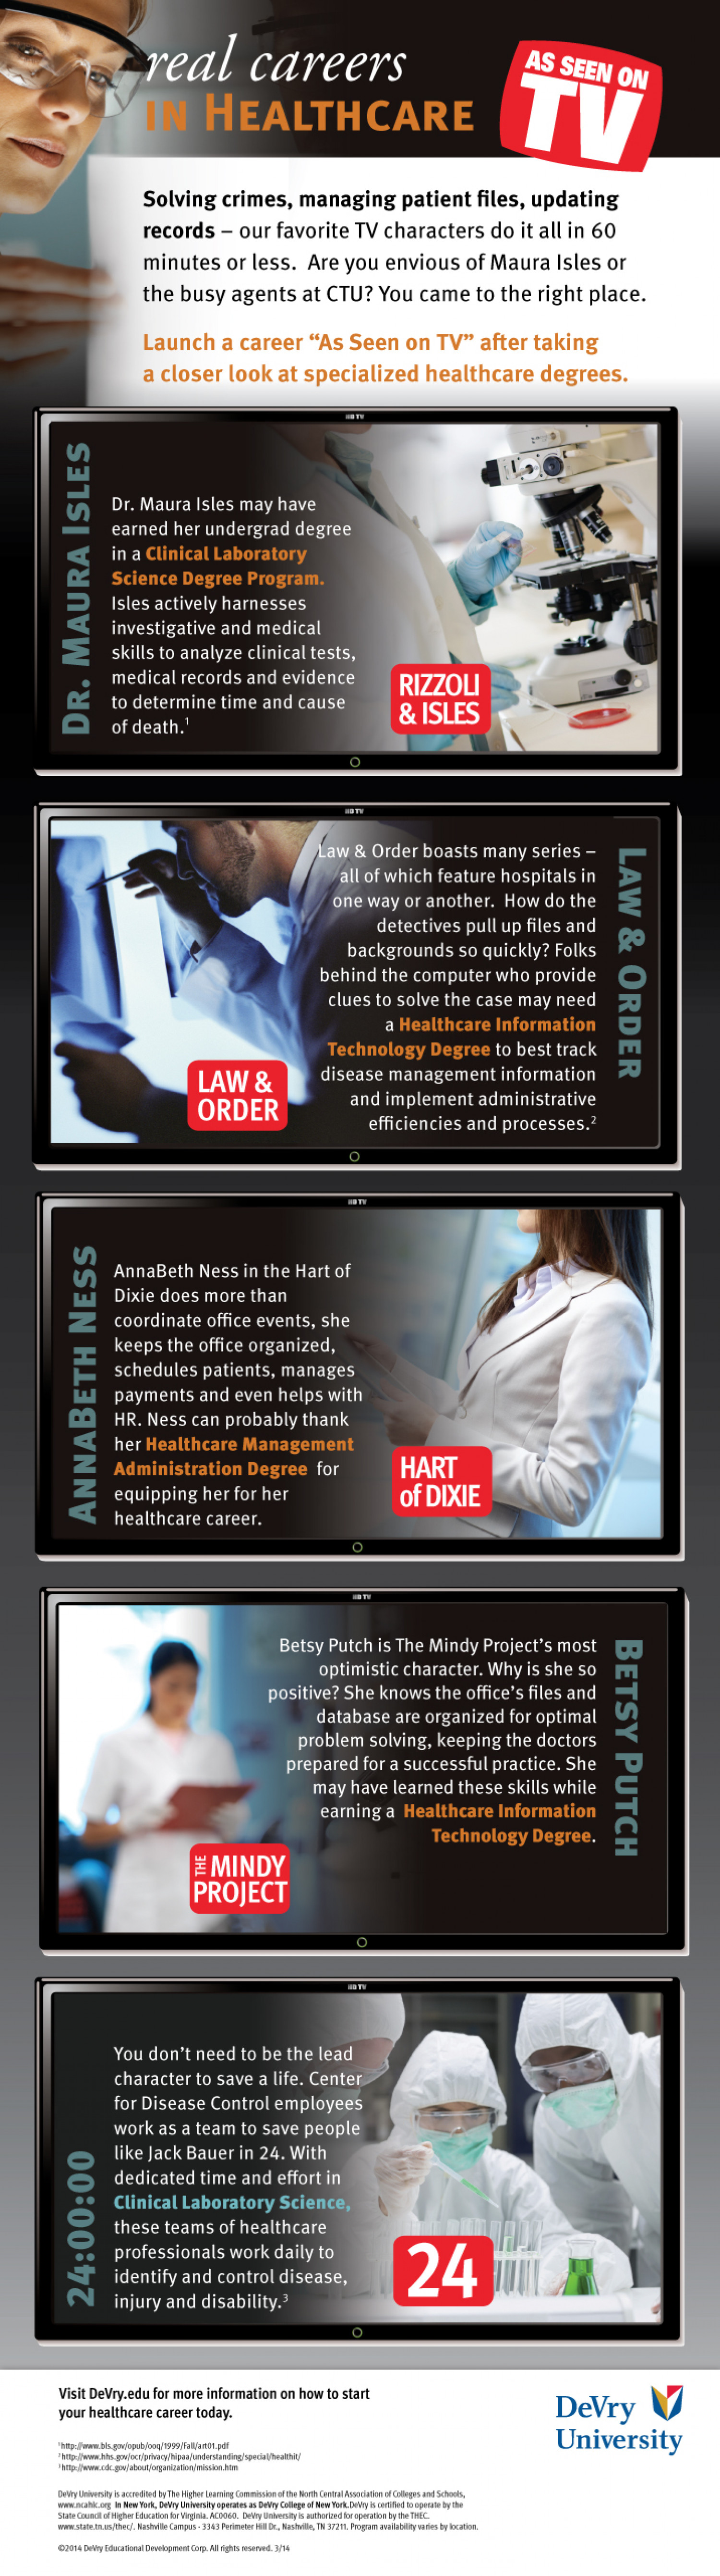 Real Healthcare Careers and Professions as Seen on TV Infographic